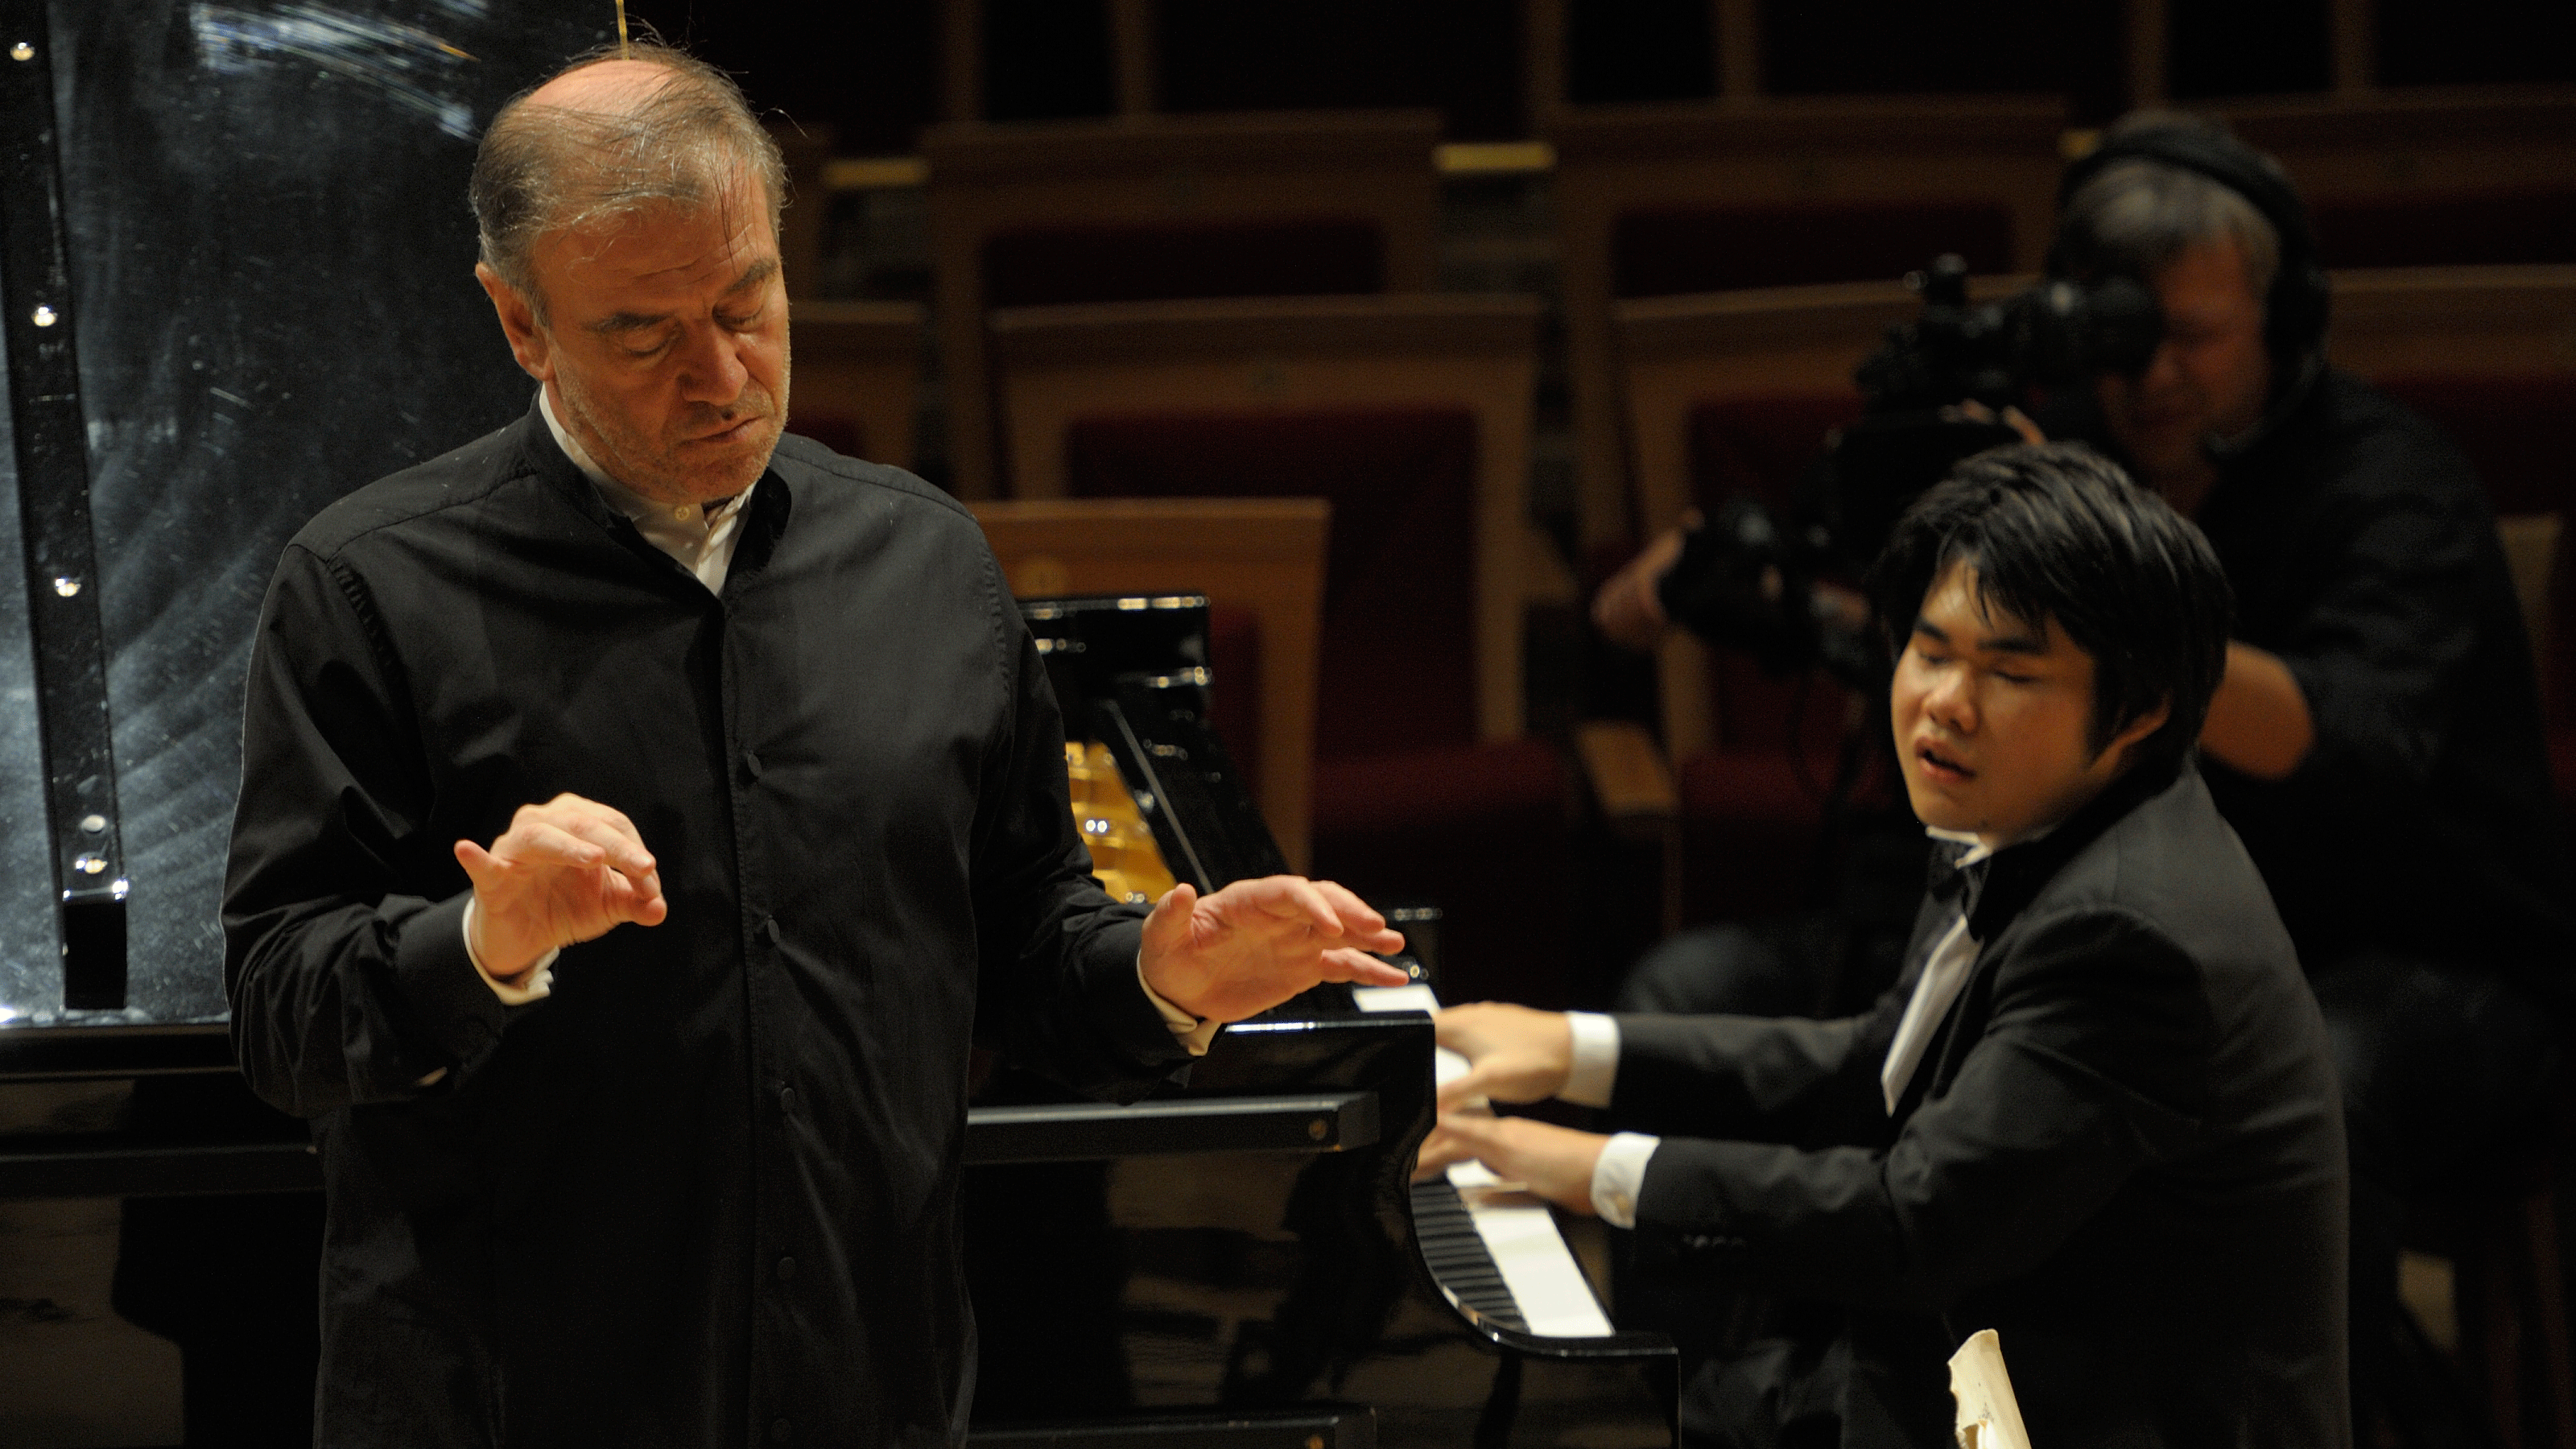 Valery Gergiev conducts Tchaikovsky, Rachmaninov and Shostakovich – With Nobuyuki Tsujii